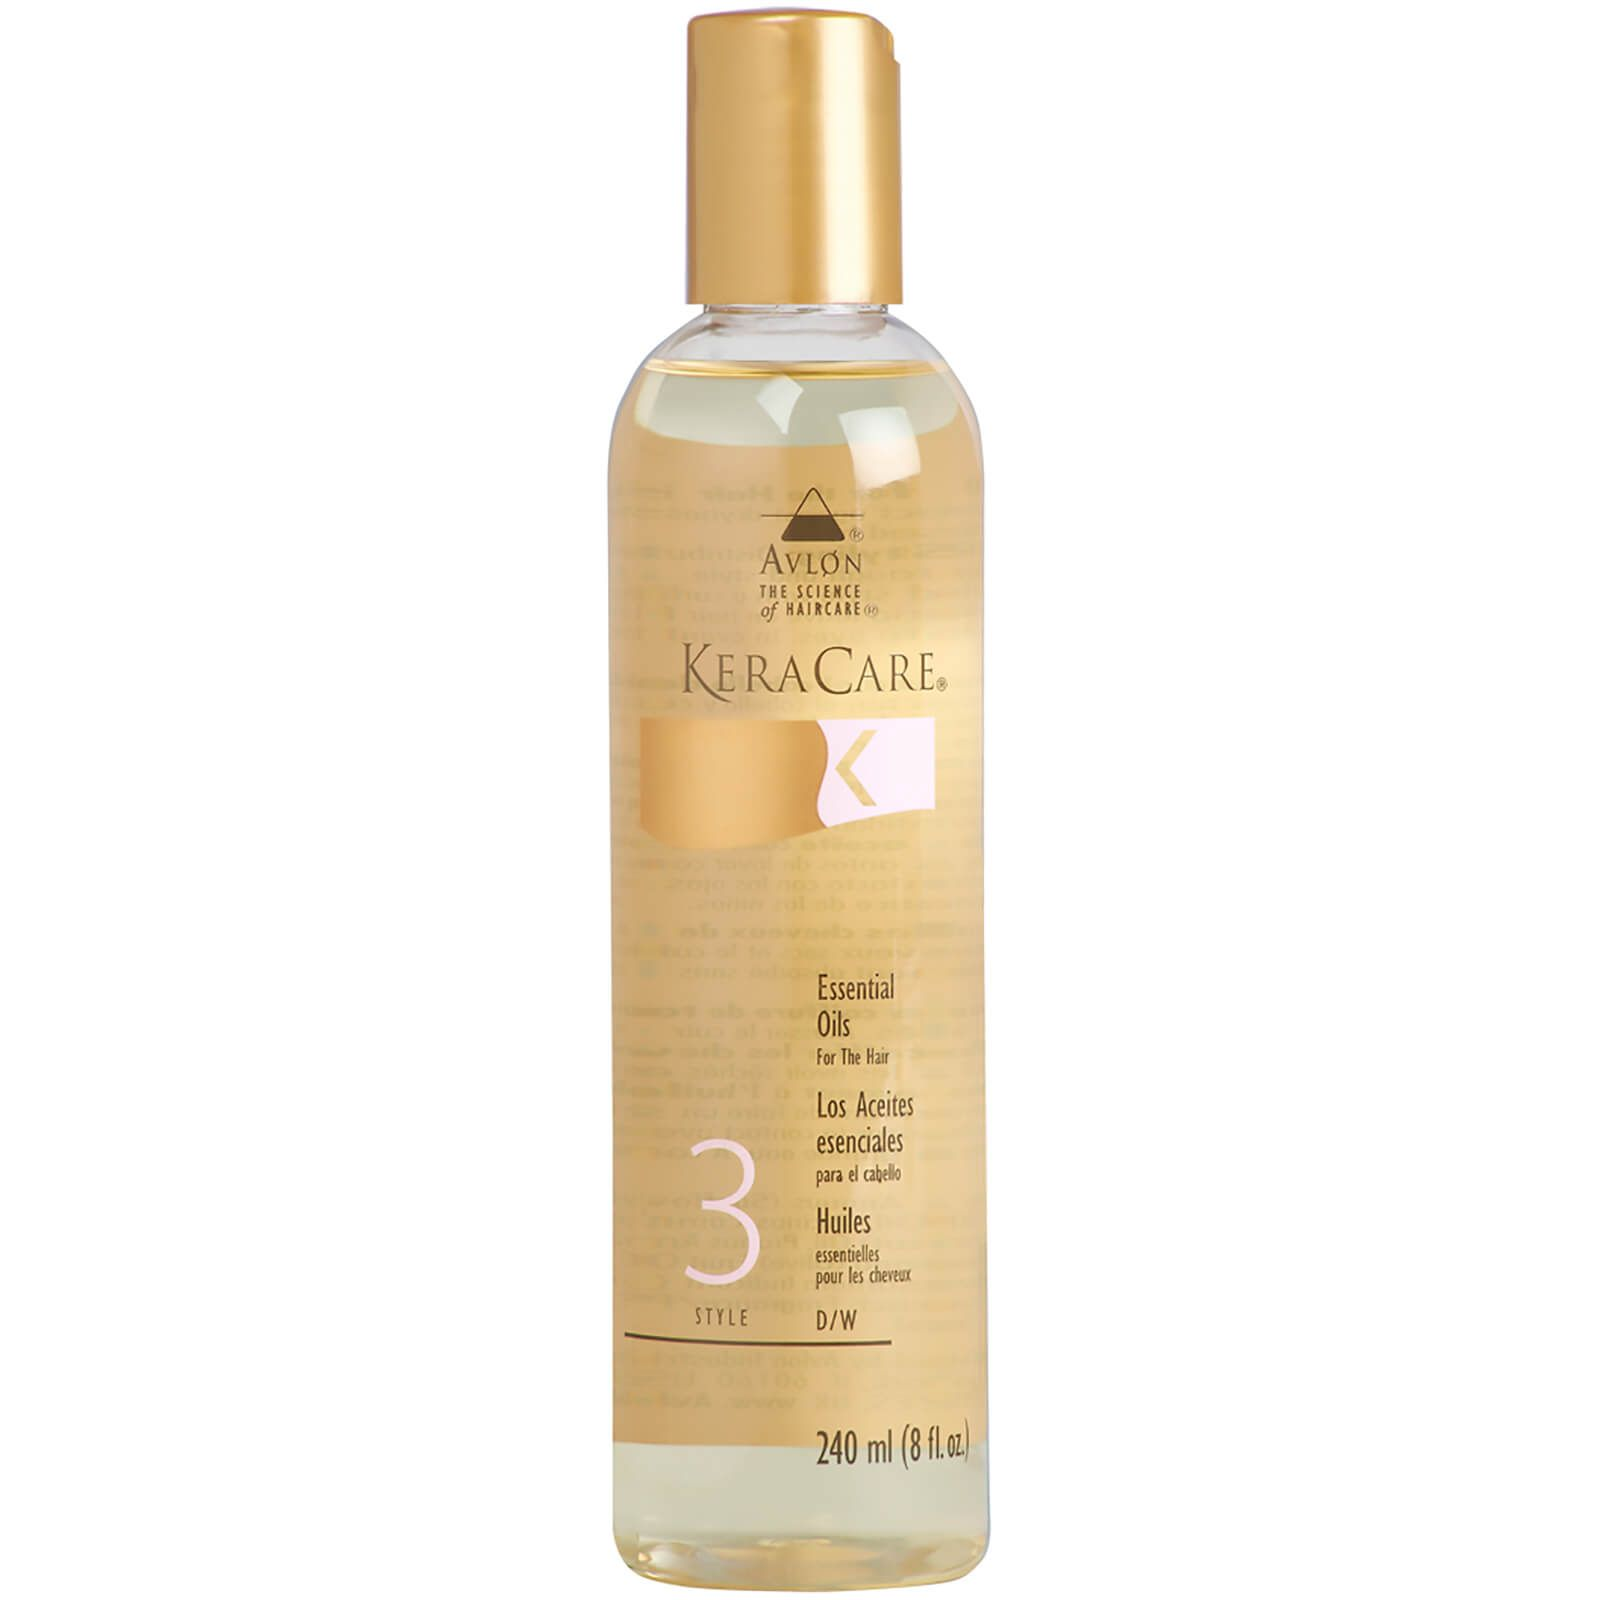 KeraCare Essential Oils for The Hair - 8oz